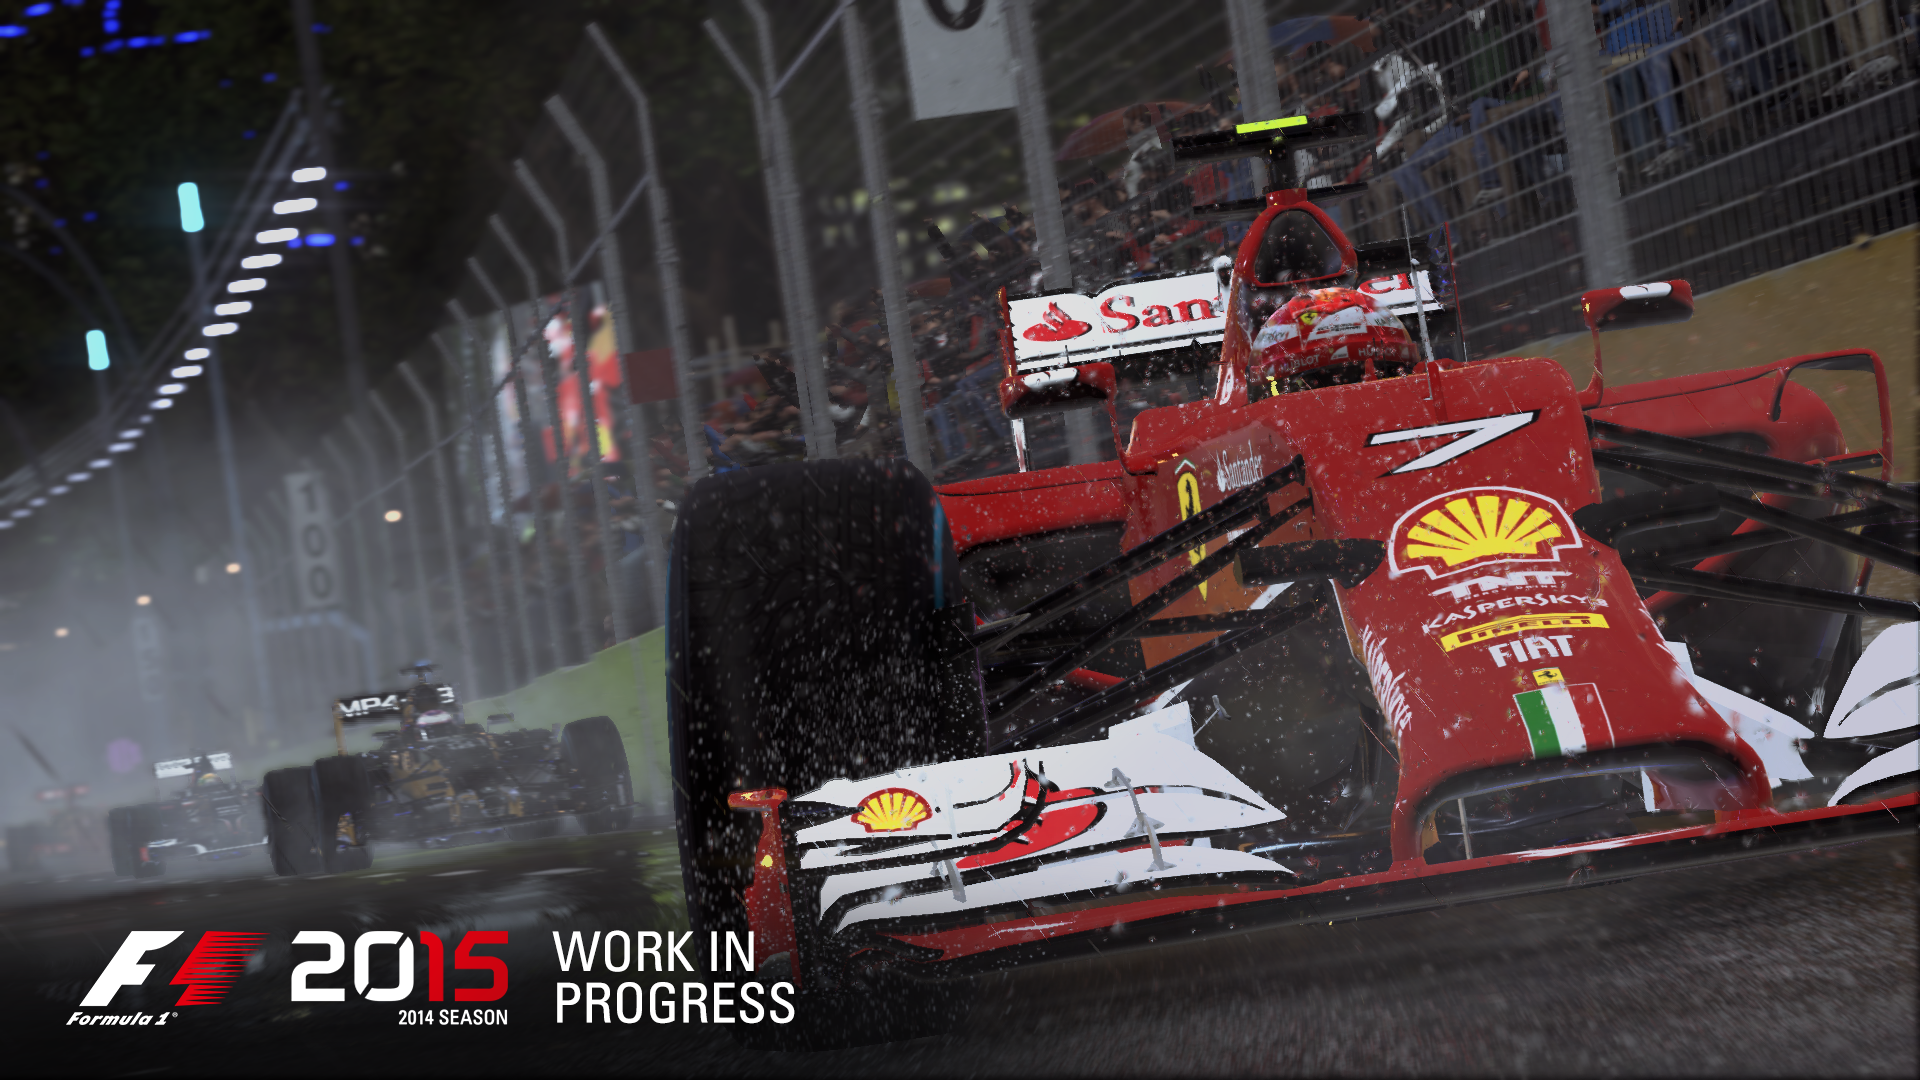 F1 2015 racing onto PS4, Xbox One and PC in June 2015: first screenshots and details